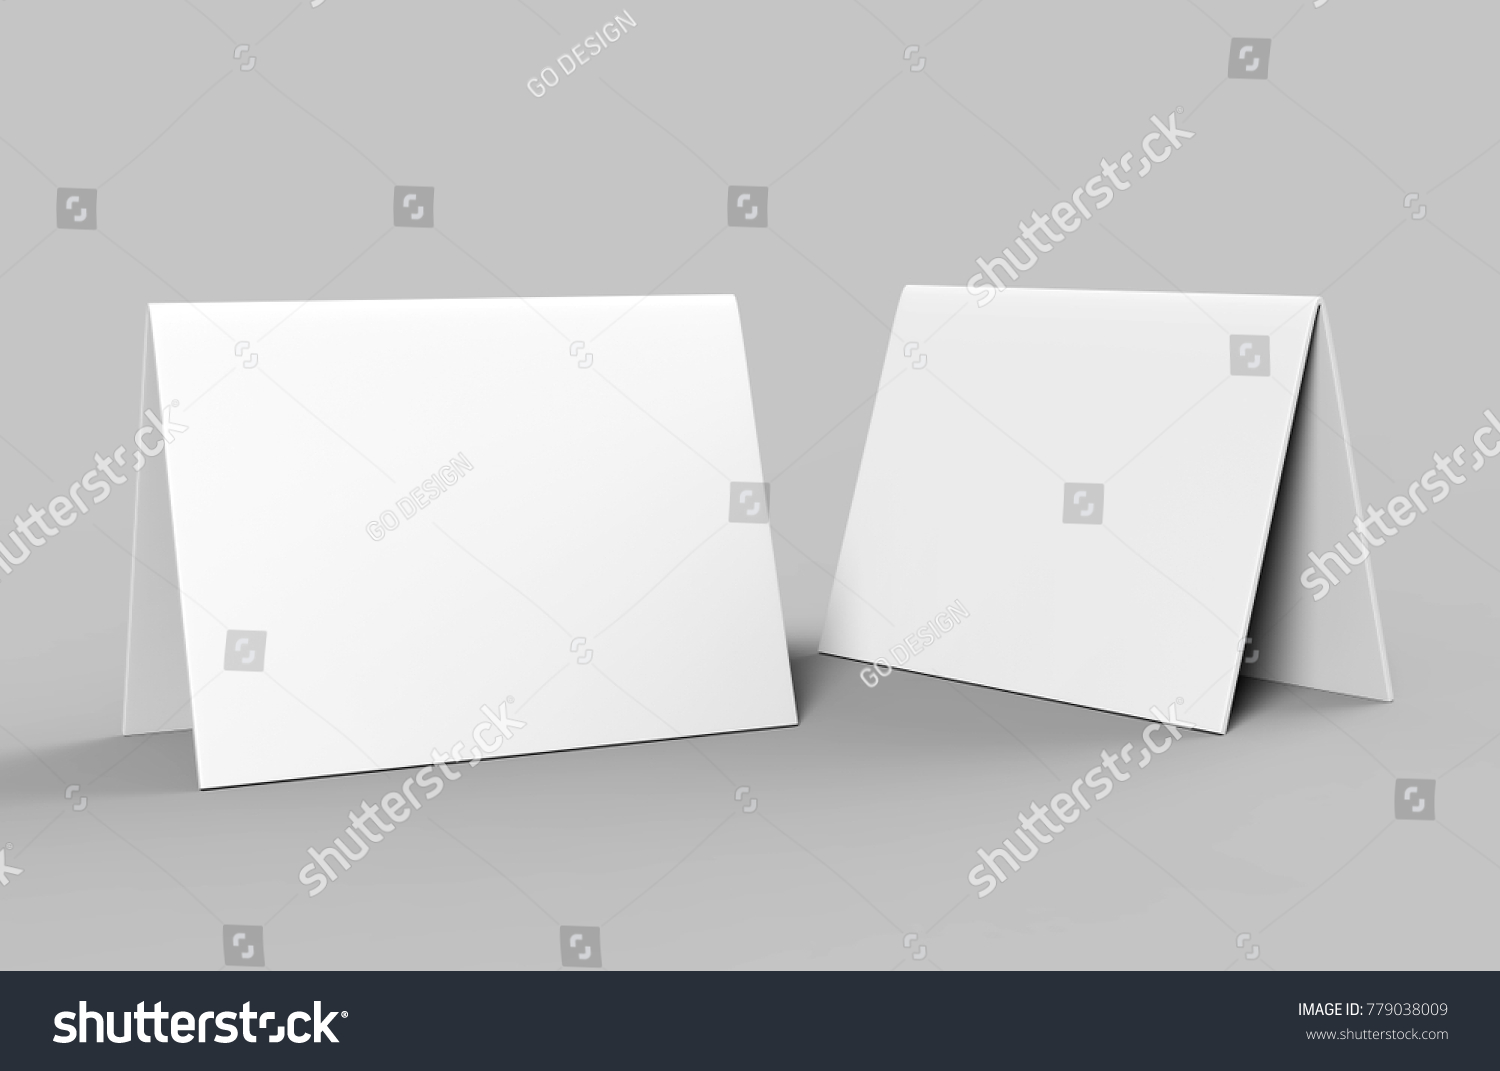 Royalty Free Stock Illustration of Table Tent Card Blank White 3 D ...